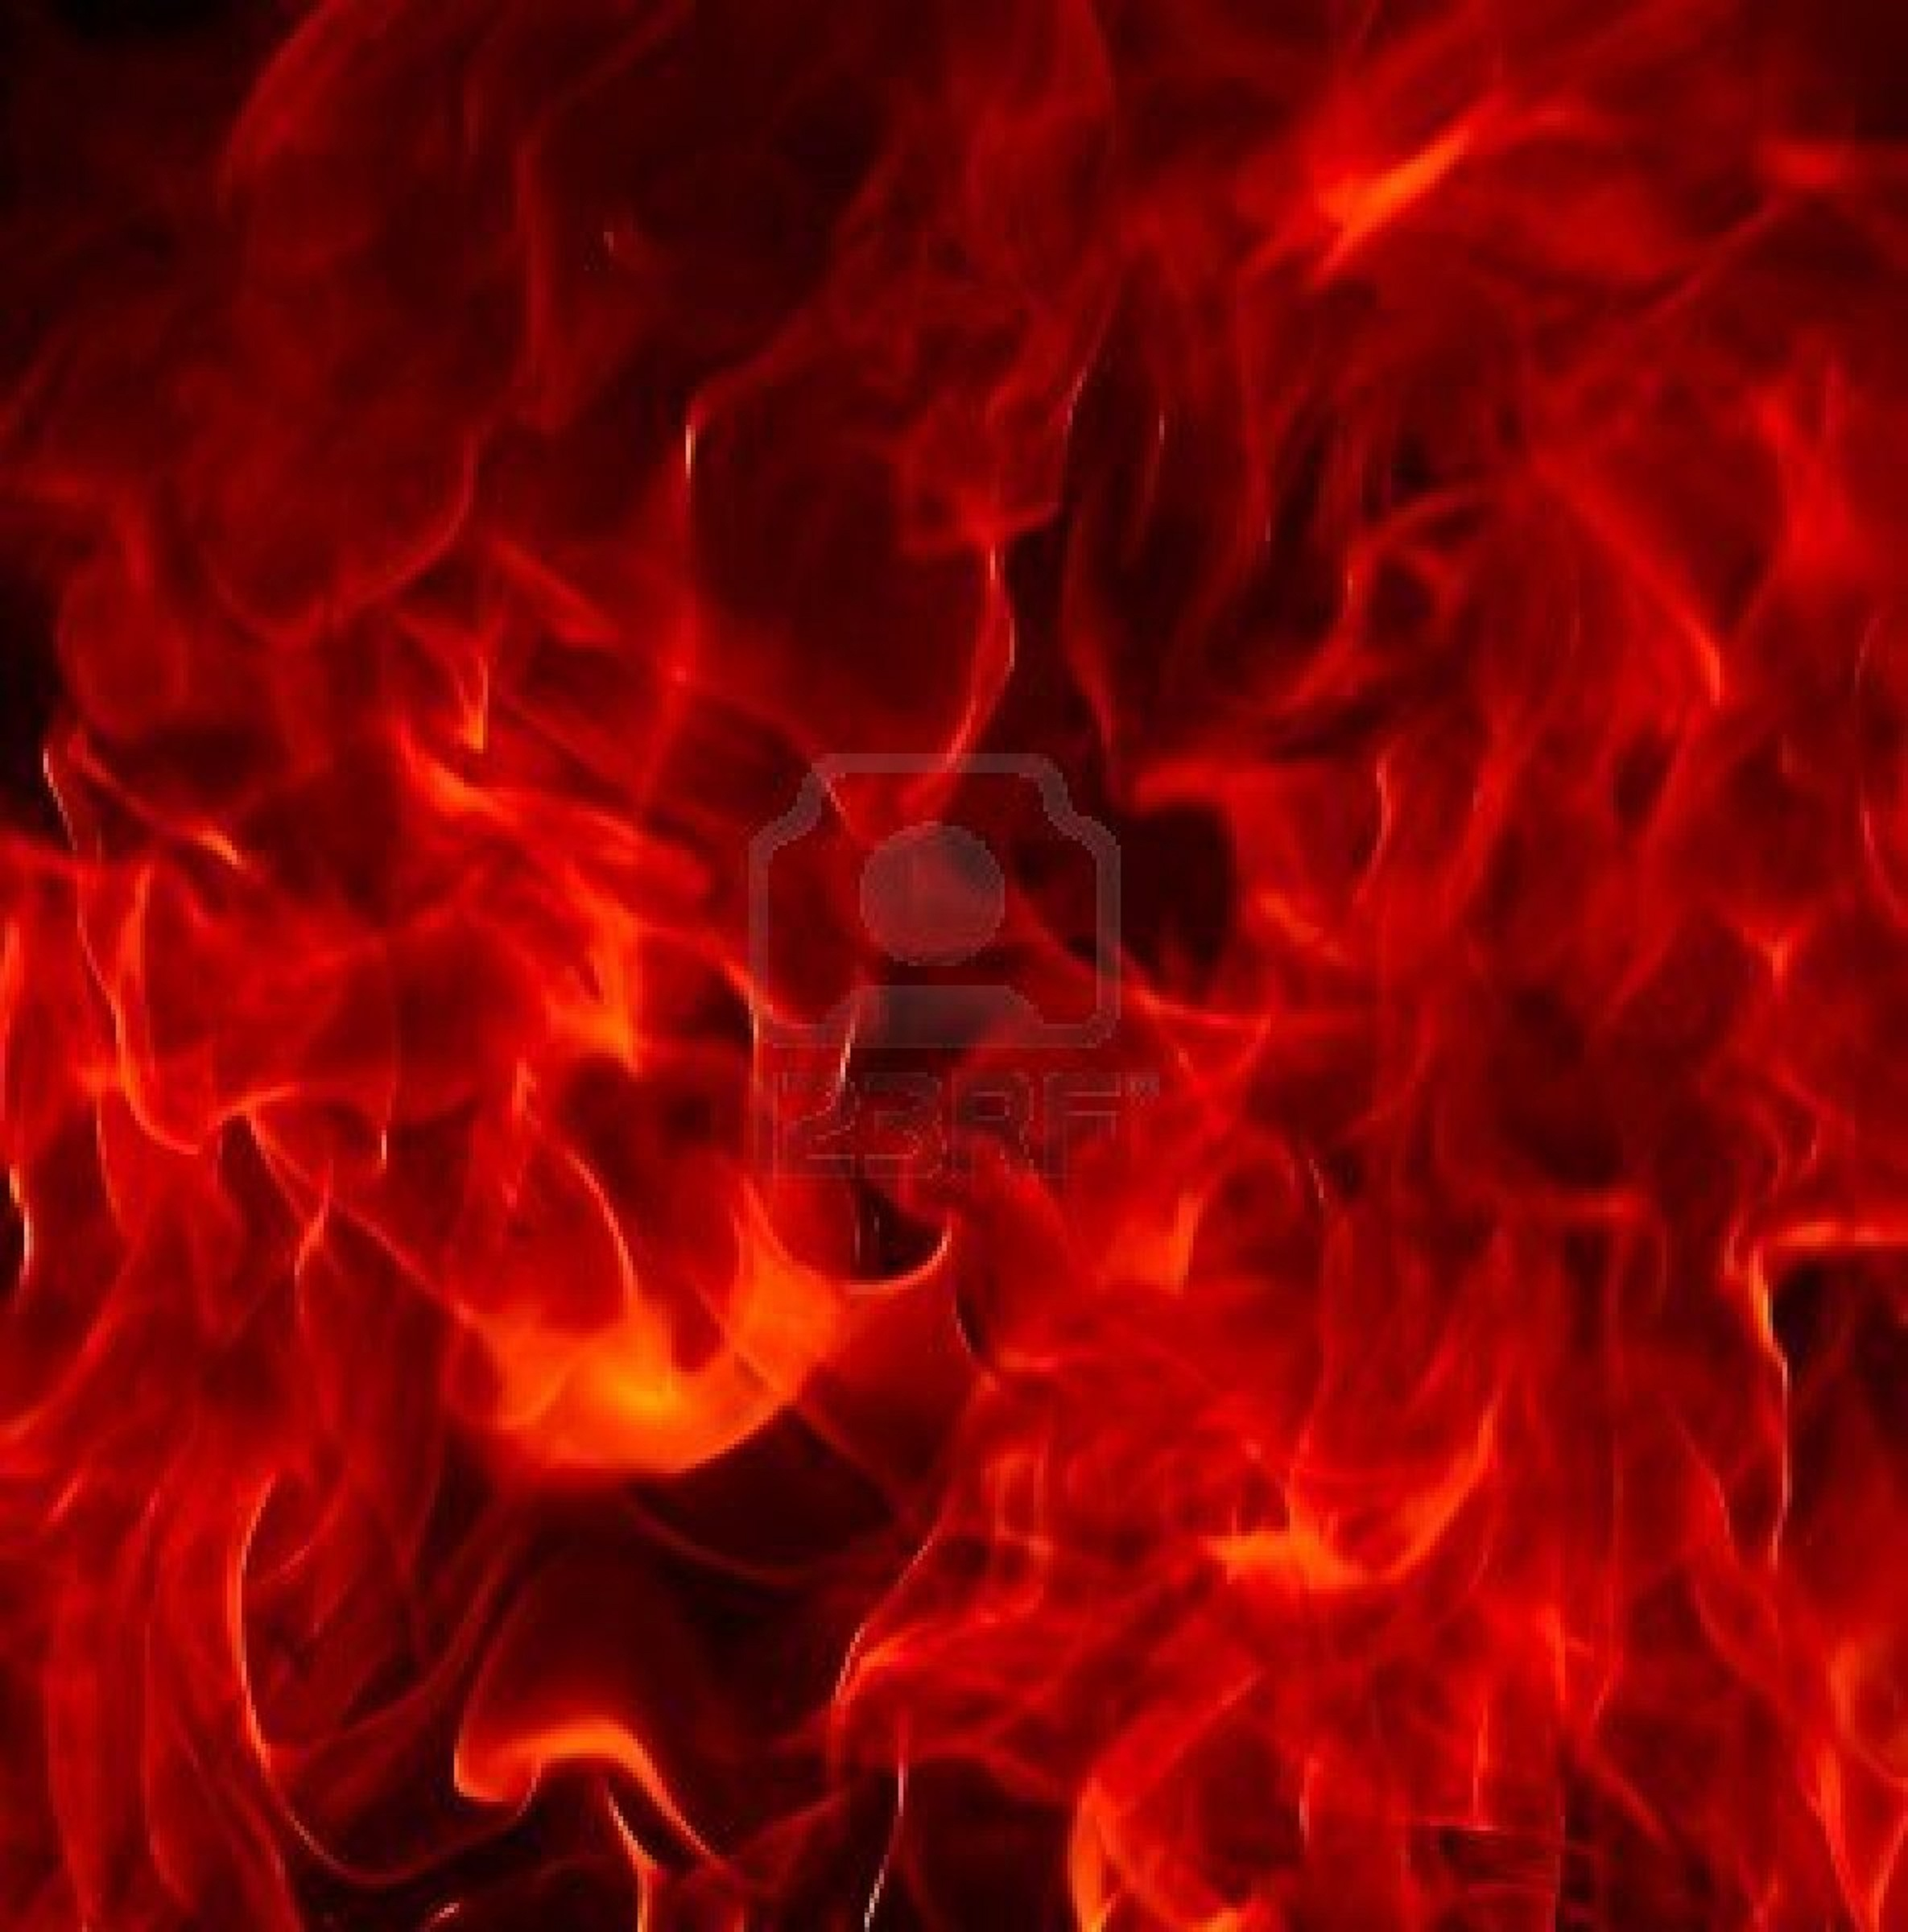 Fire Red And Black Wallpaper Flames picture 2370x2400